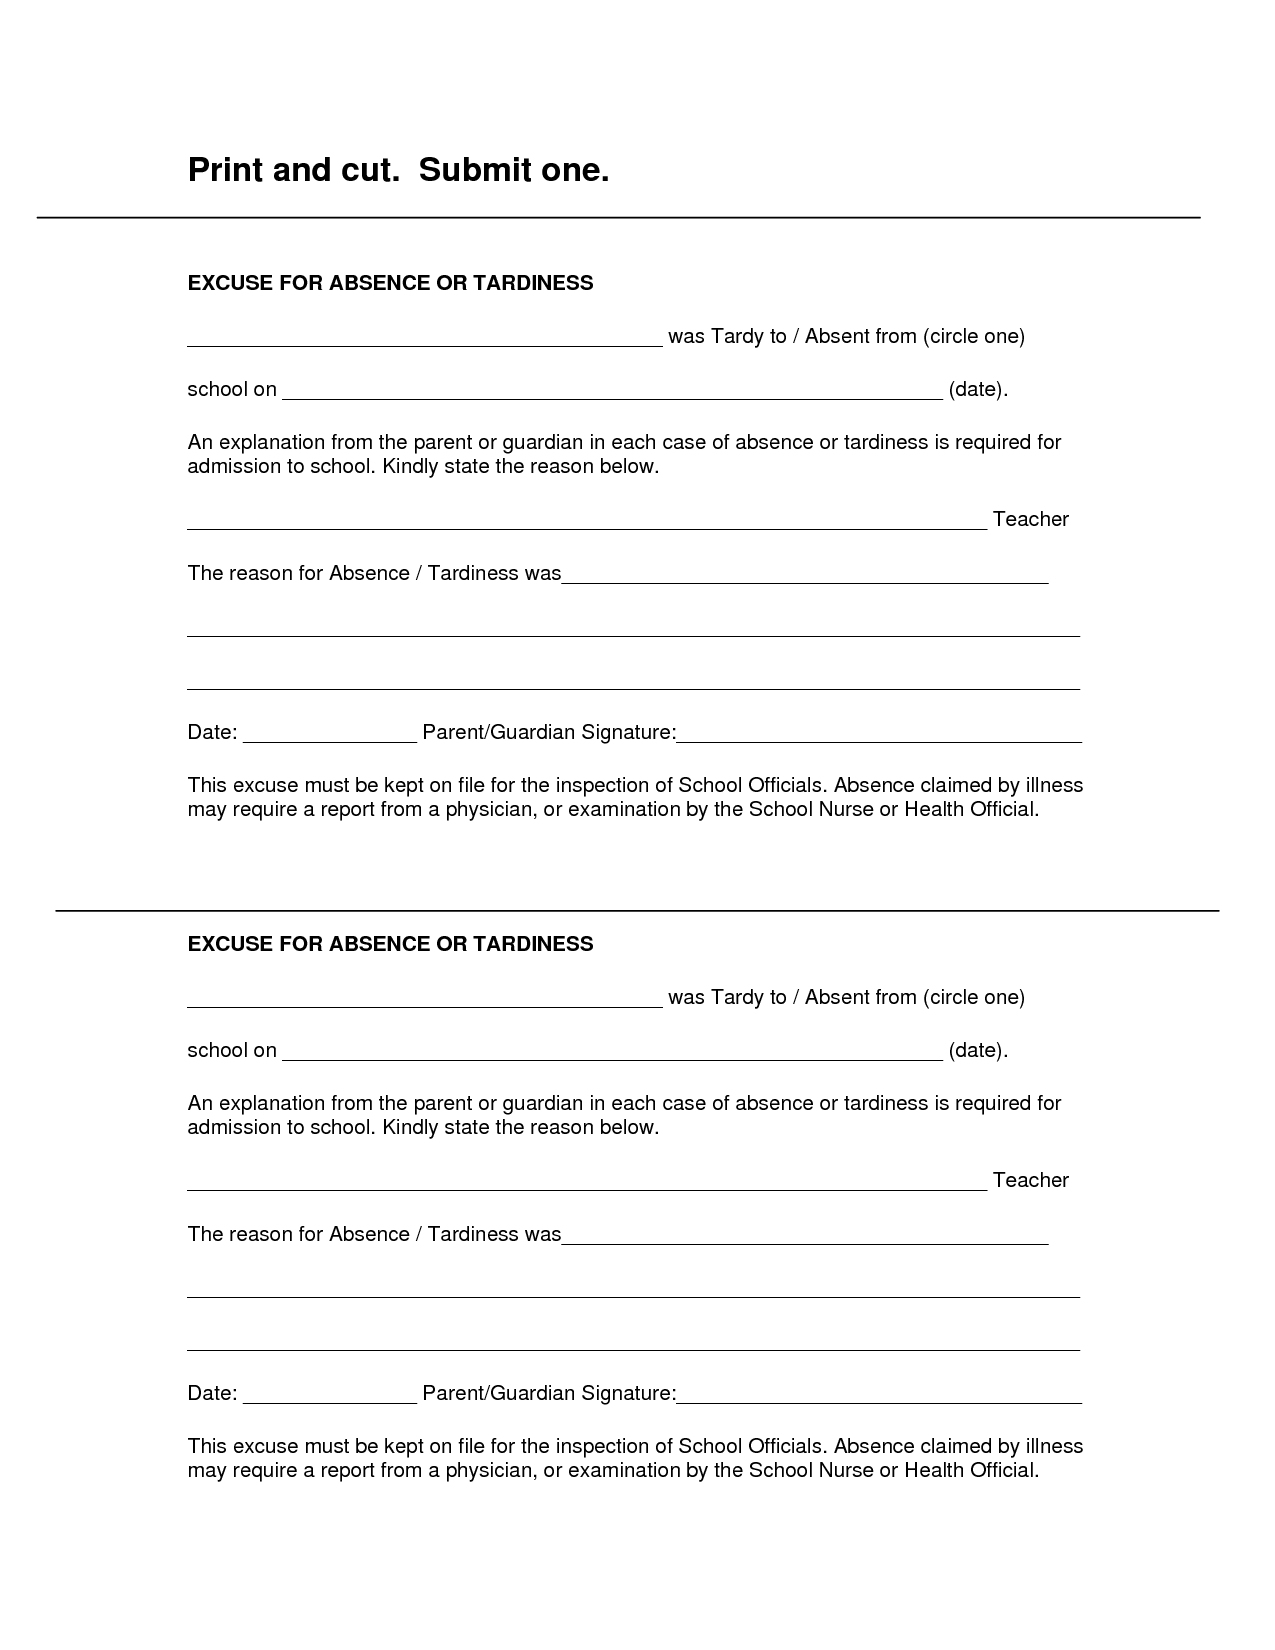 Free Printable Doctors Excuse For Work | Rota Template - Free Printable Doctor Excuse Slips